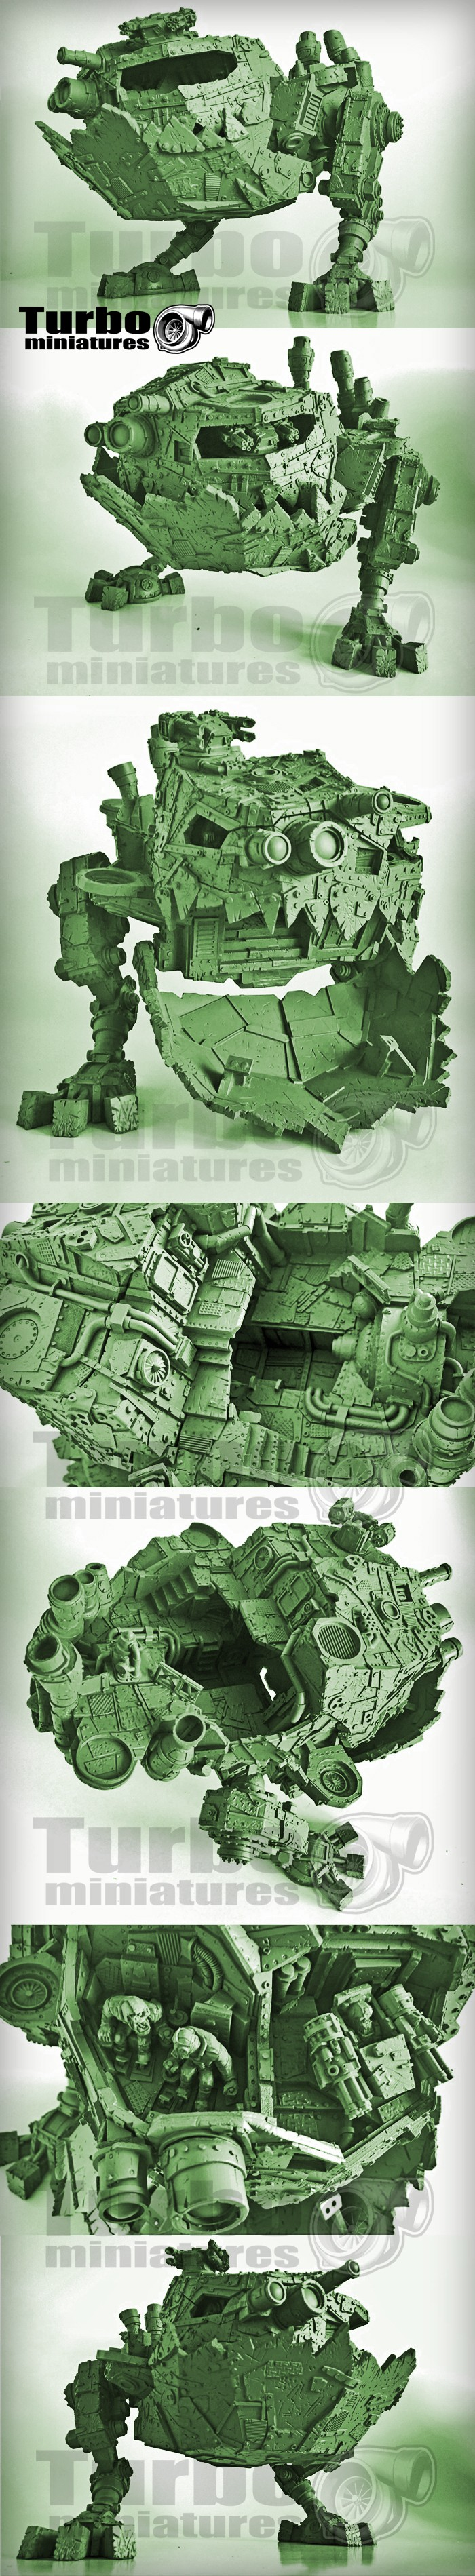 Stompa Kevin ork orc Machine Deff Dread mega Mad